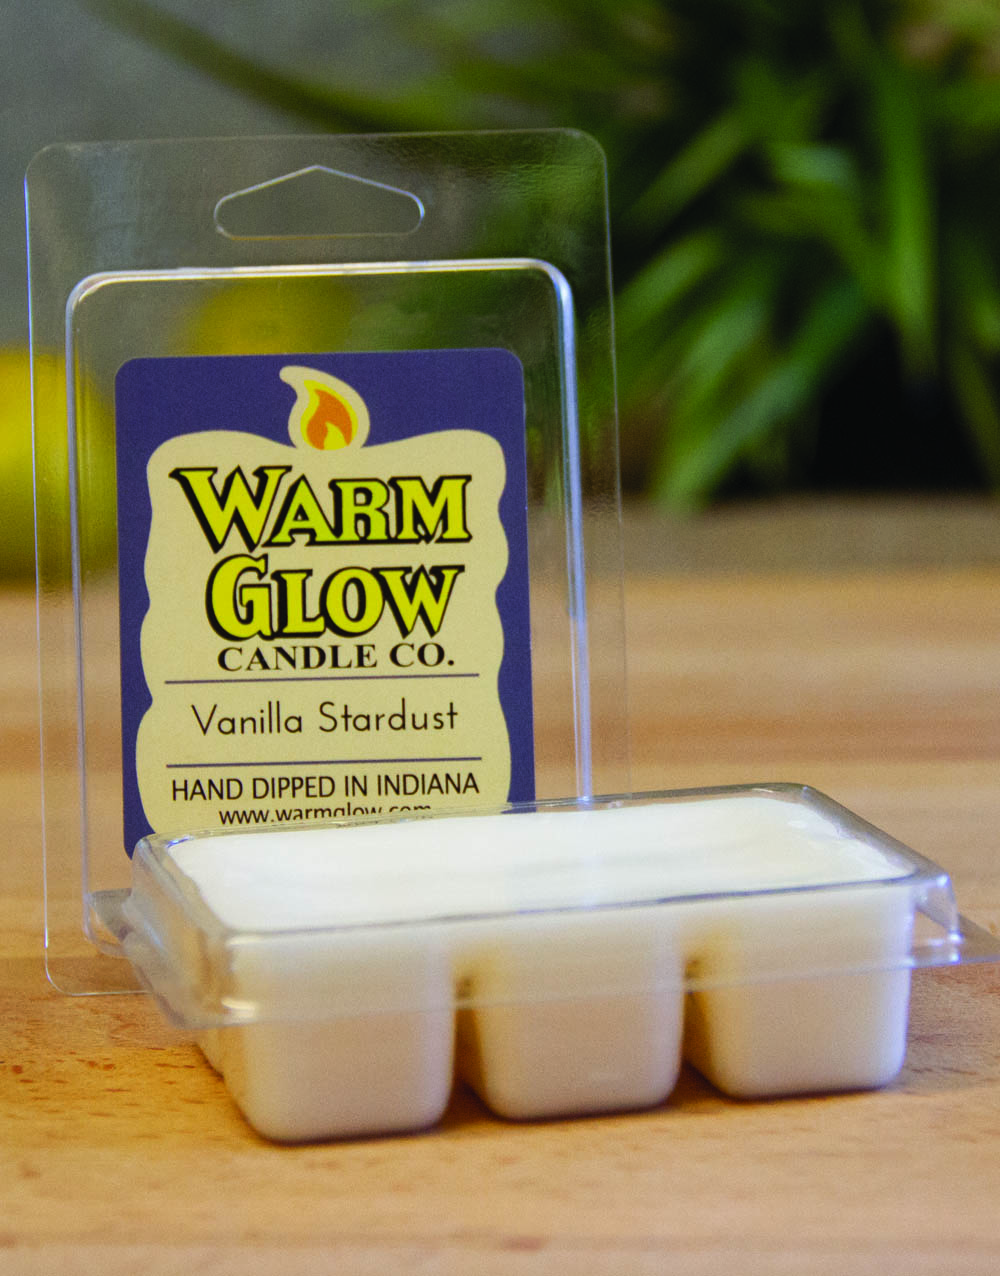 Vanilla Stardust wax melts